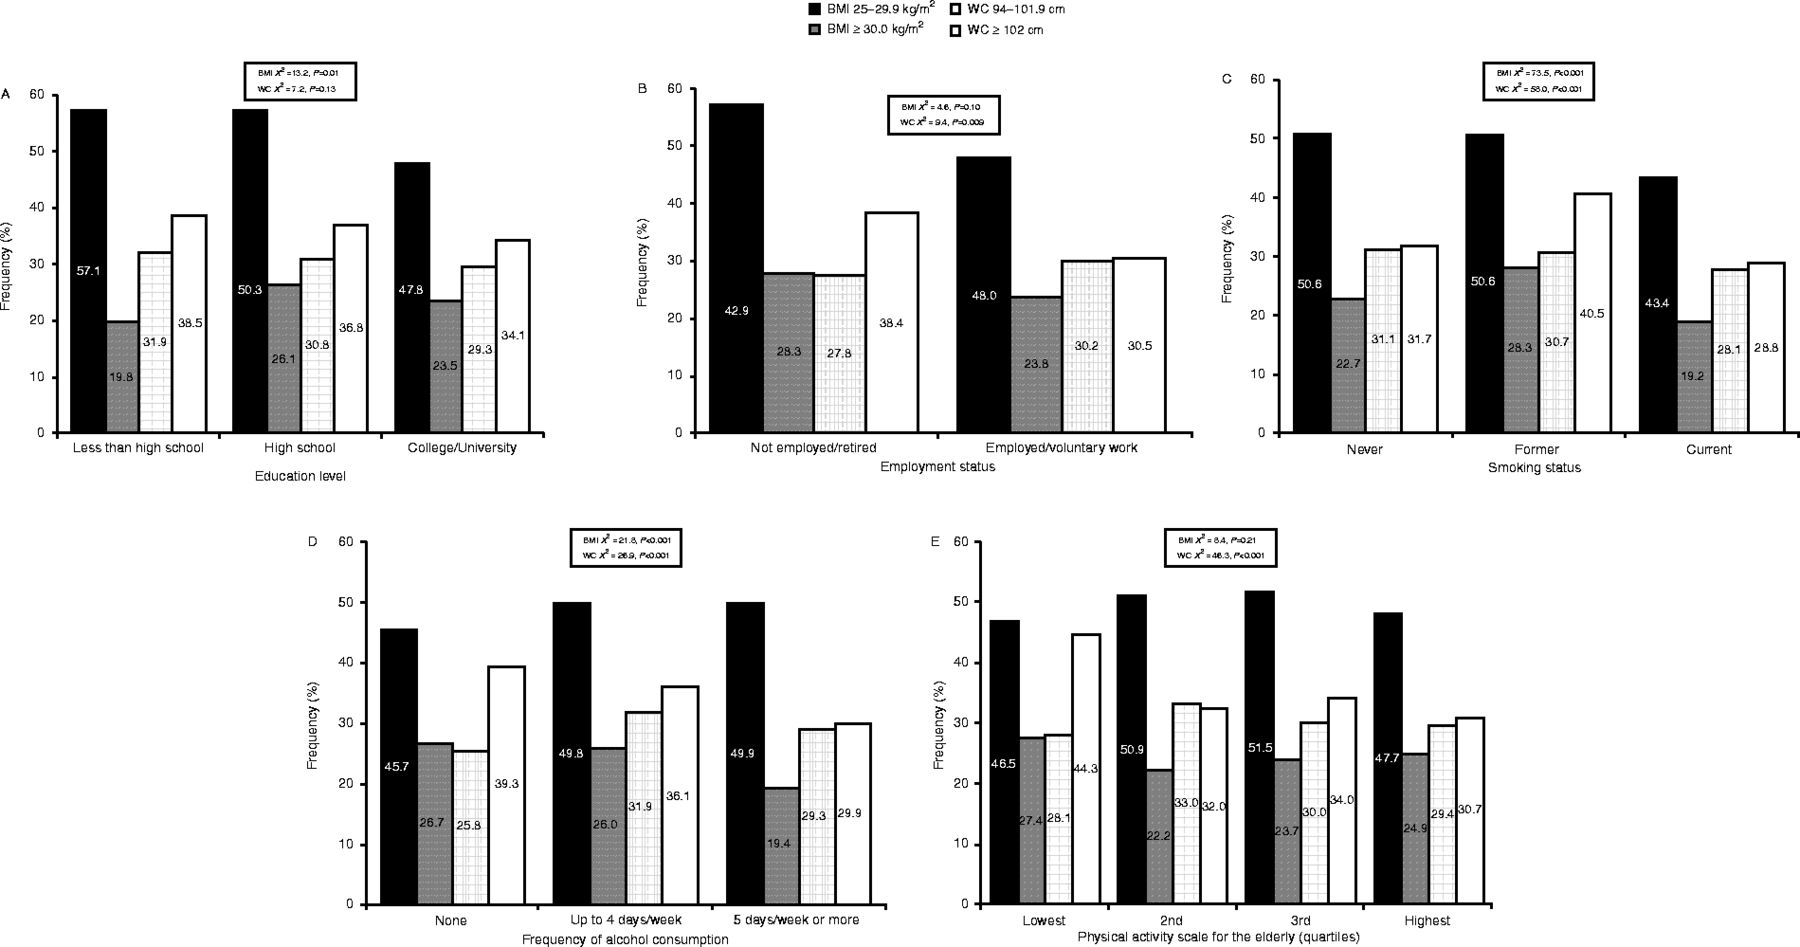 Associations of obesity with socioeconomic and lifestyle